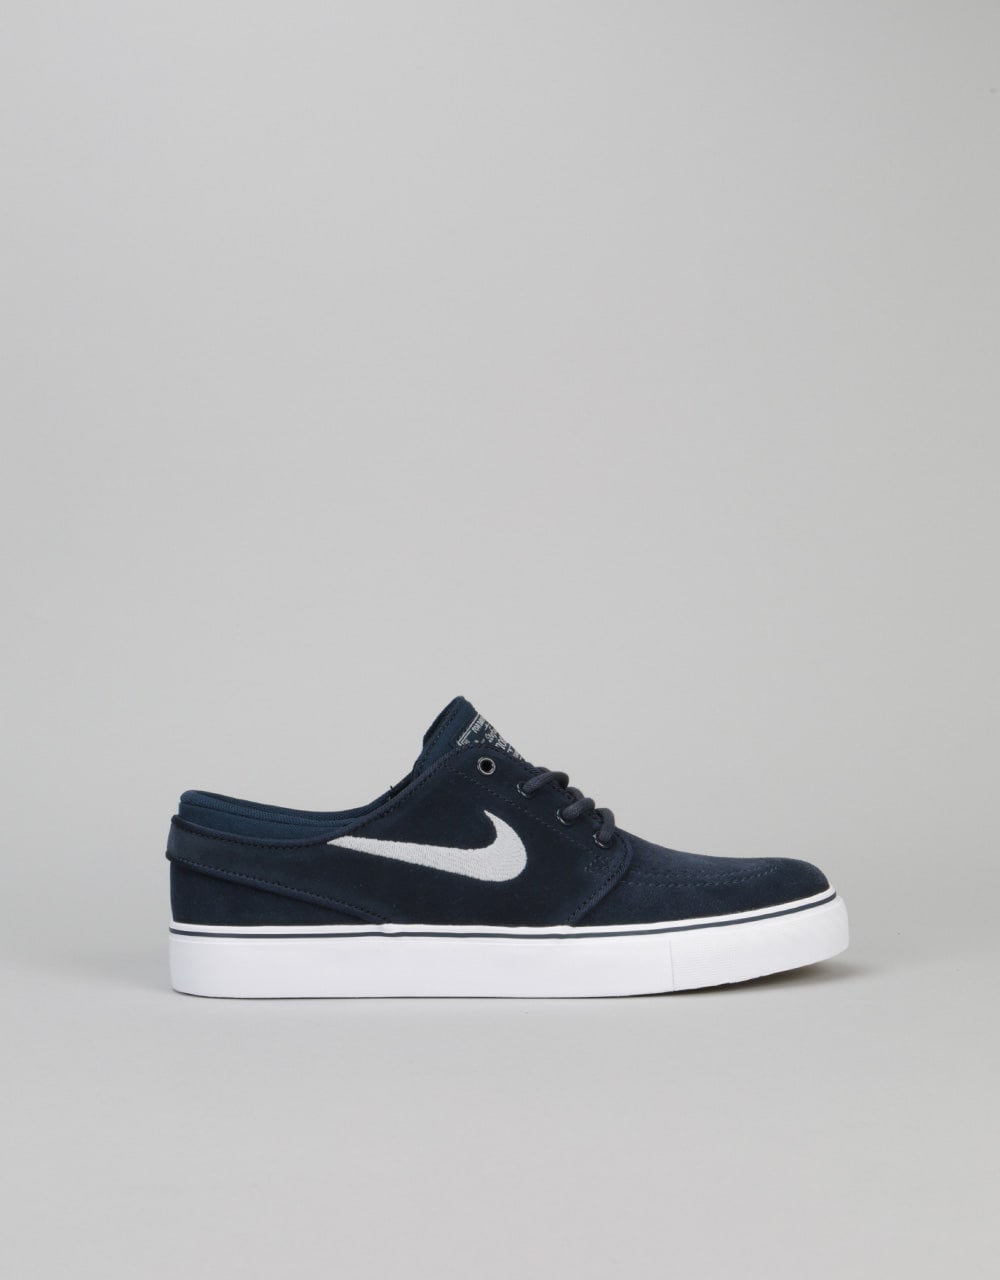 wholesale dealer da637 02433 Nike SB Stefan Janoski Boys Skate Shoes - ObsidianWolf GreyWhite  Nike SB   Skate Shoes, Clothing  Accessories  Route One